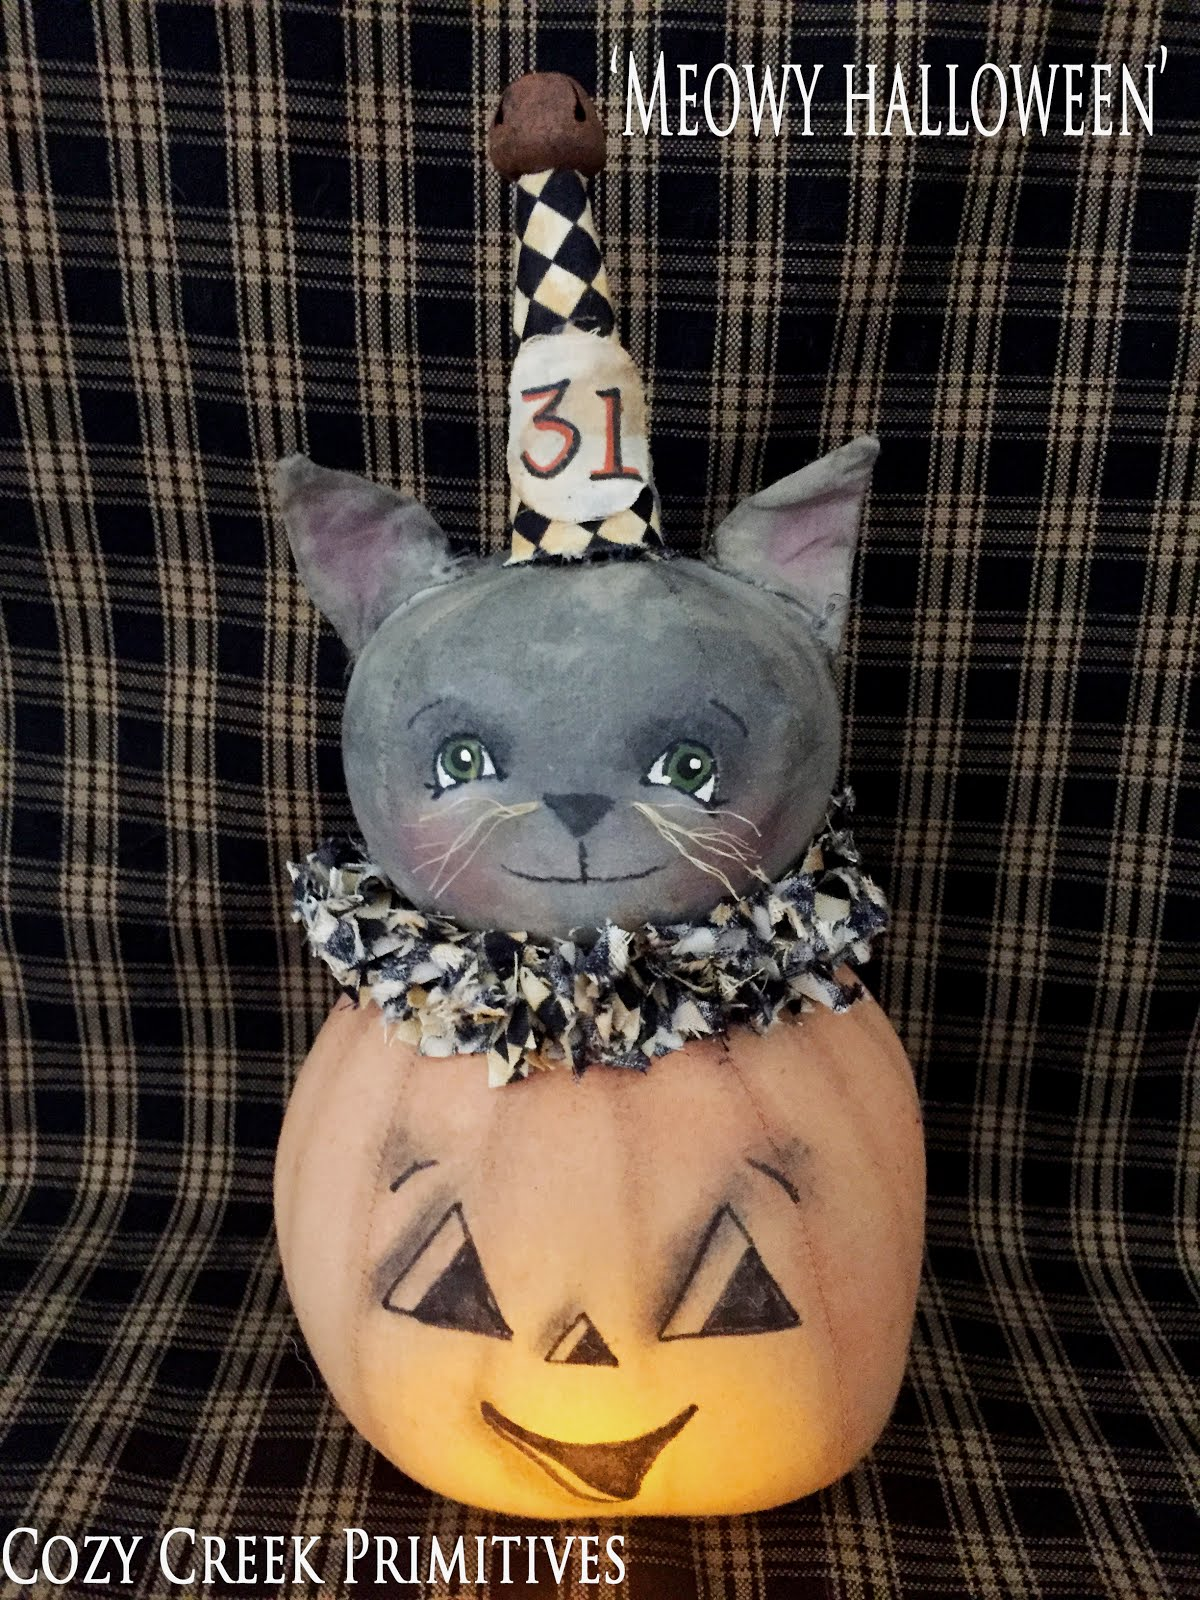 Meowy Halloween -Vintage Pumpkin With Cat